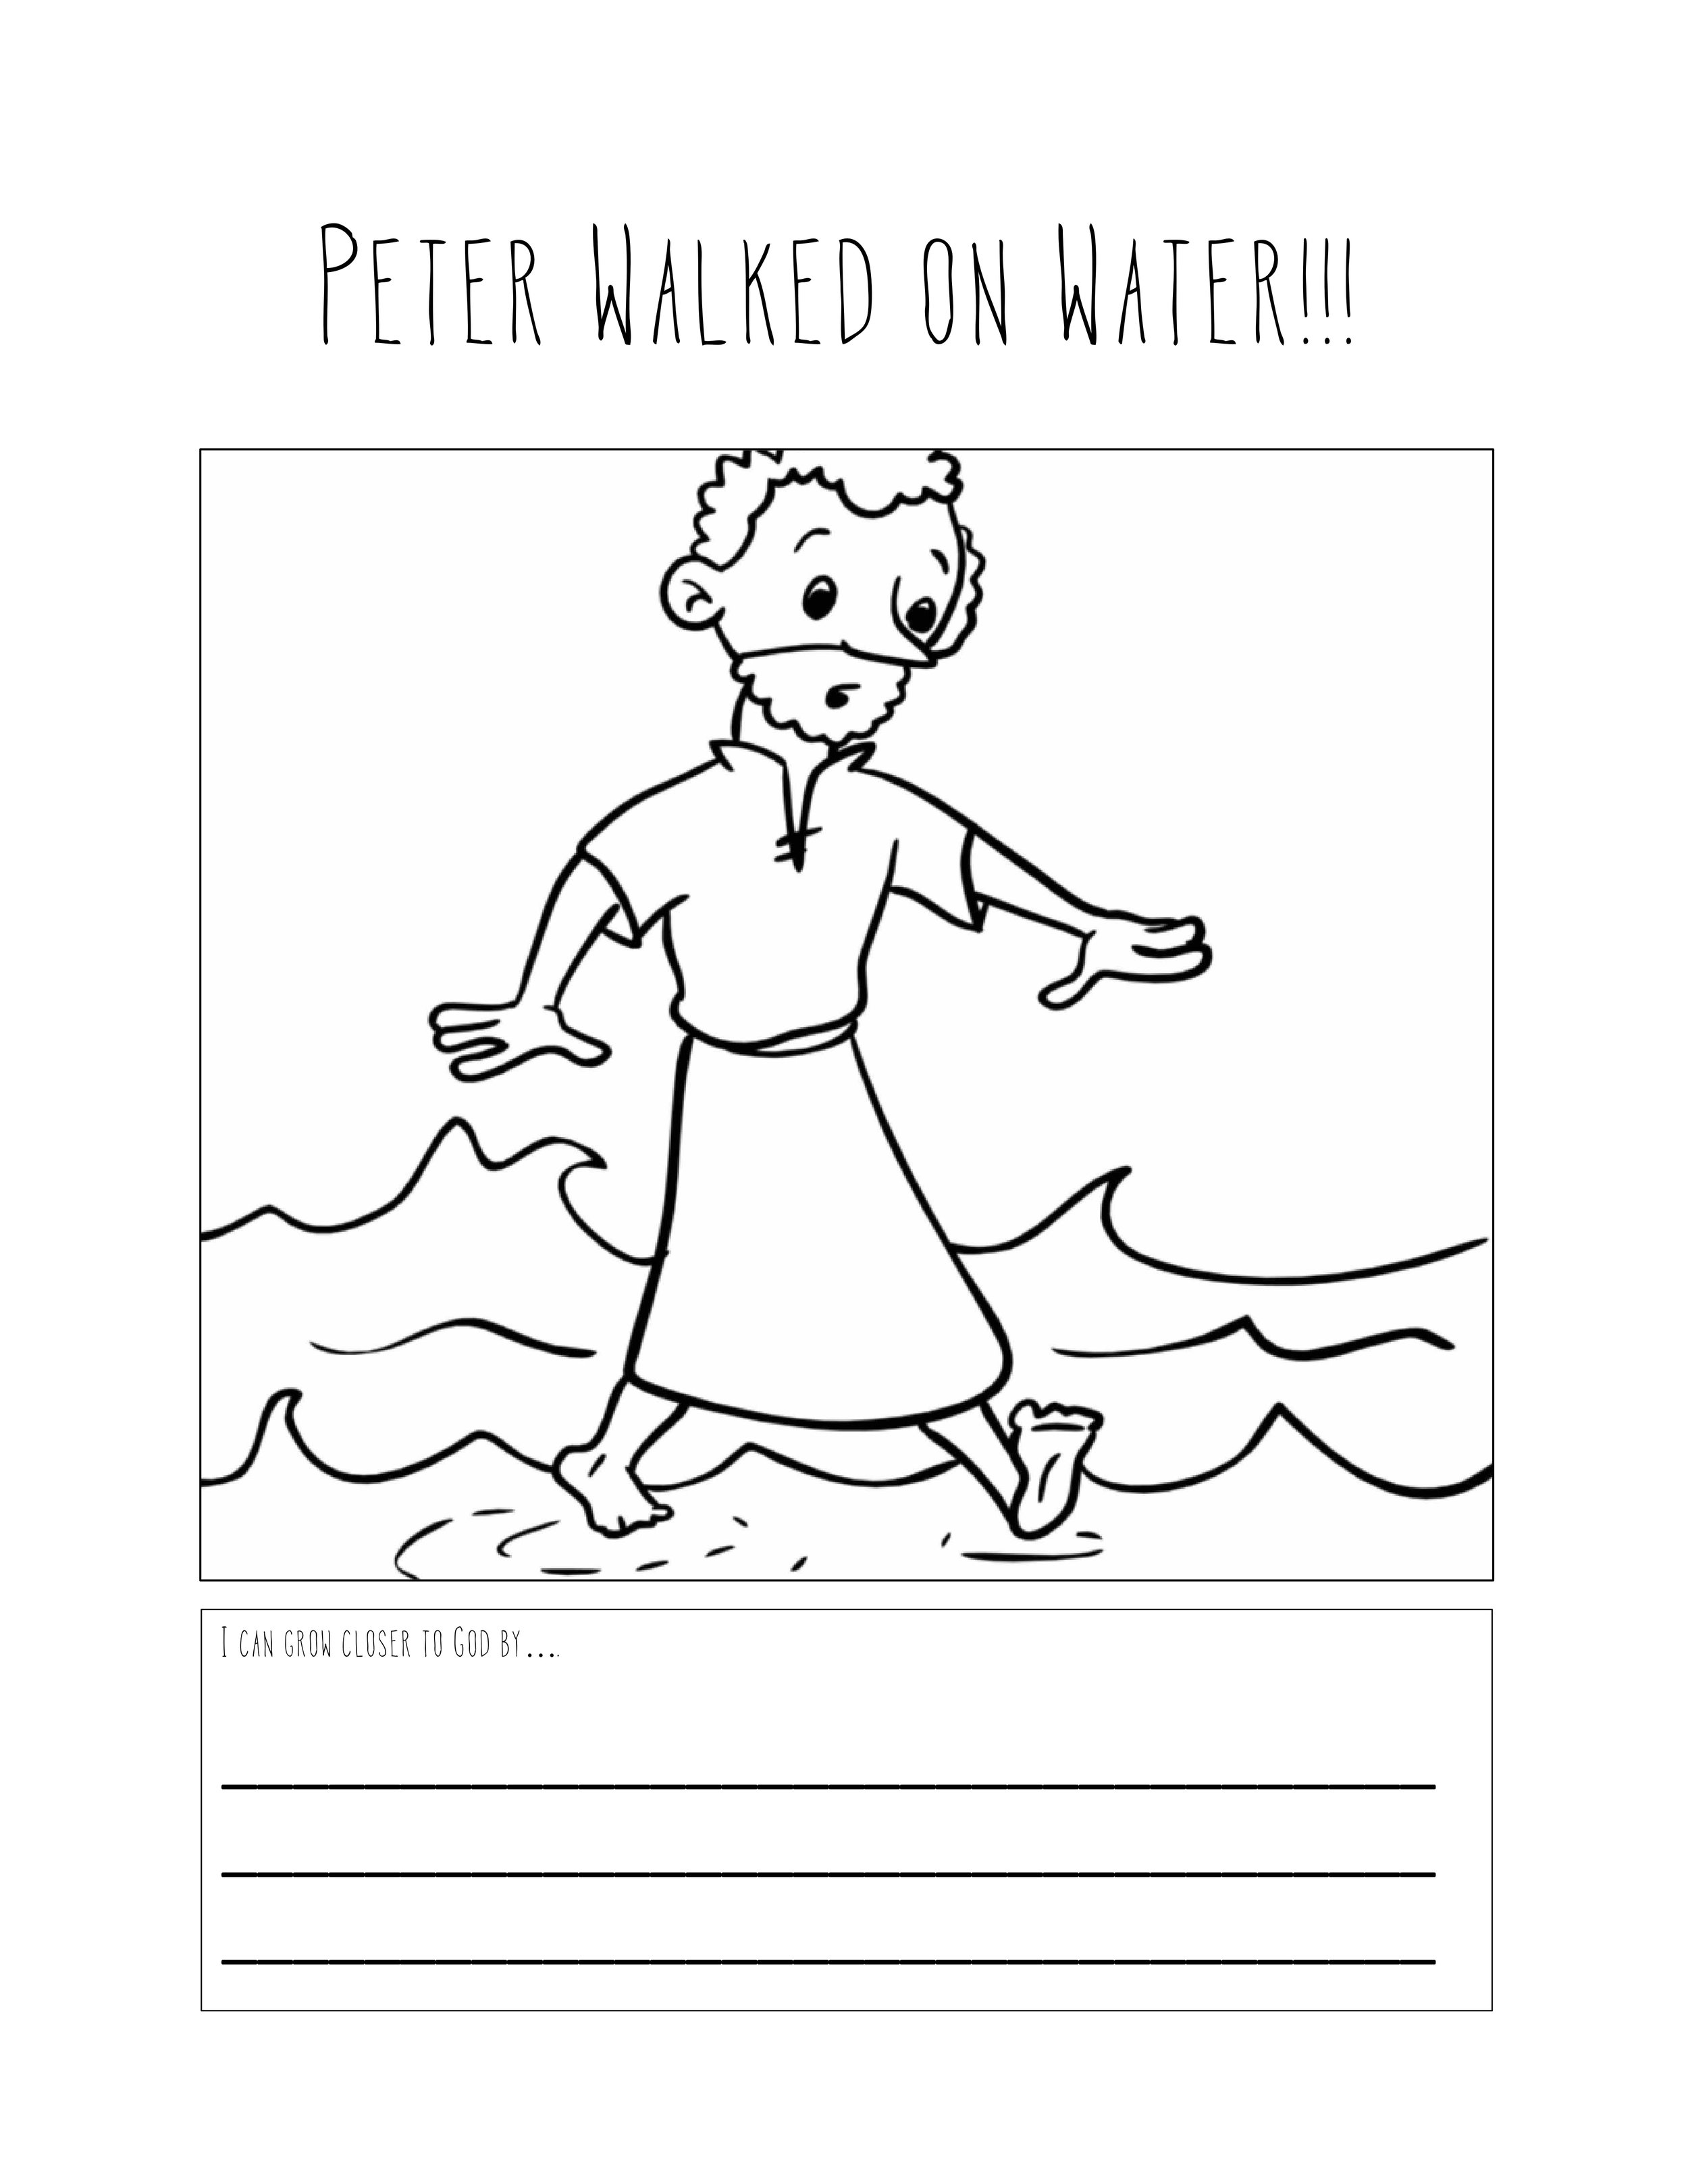 Peter Walked on Water.jpg